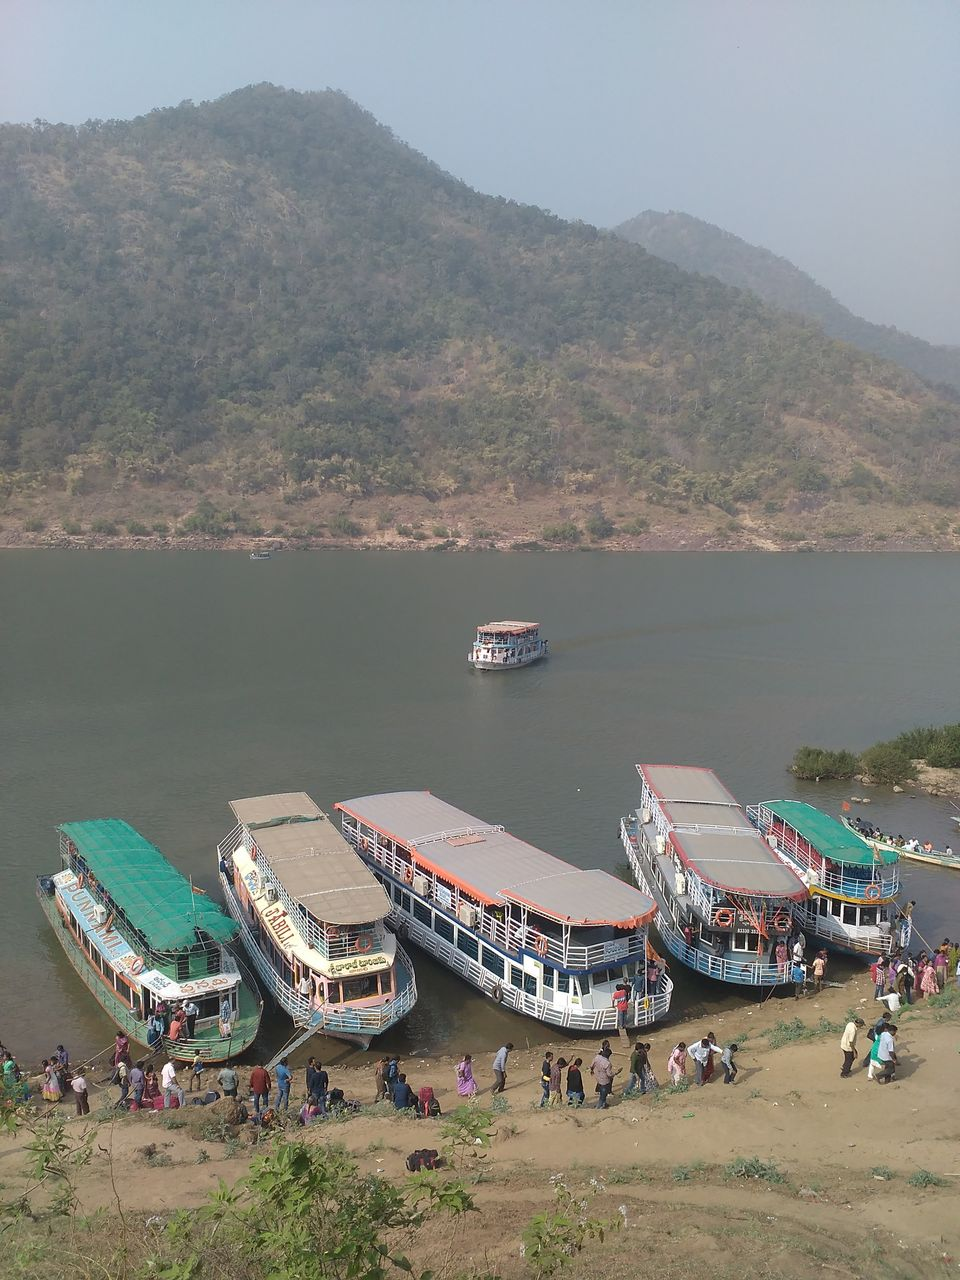 Photos of Get lost in the lap of River Godavari's Paapi Kondalu in Andhra Pradesh - A Visitor's Delight 1/1 by Karim S A